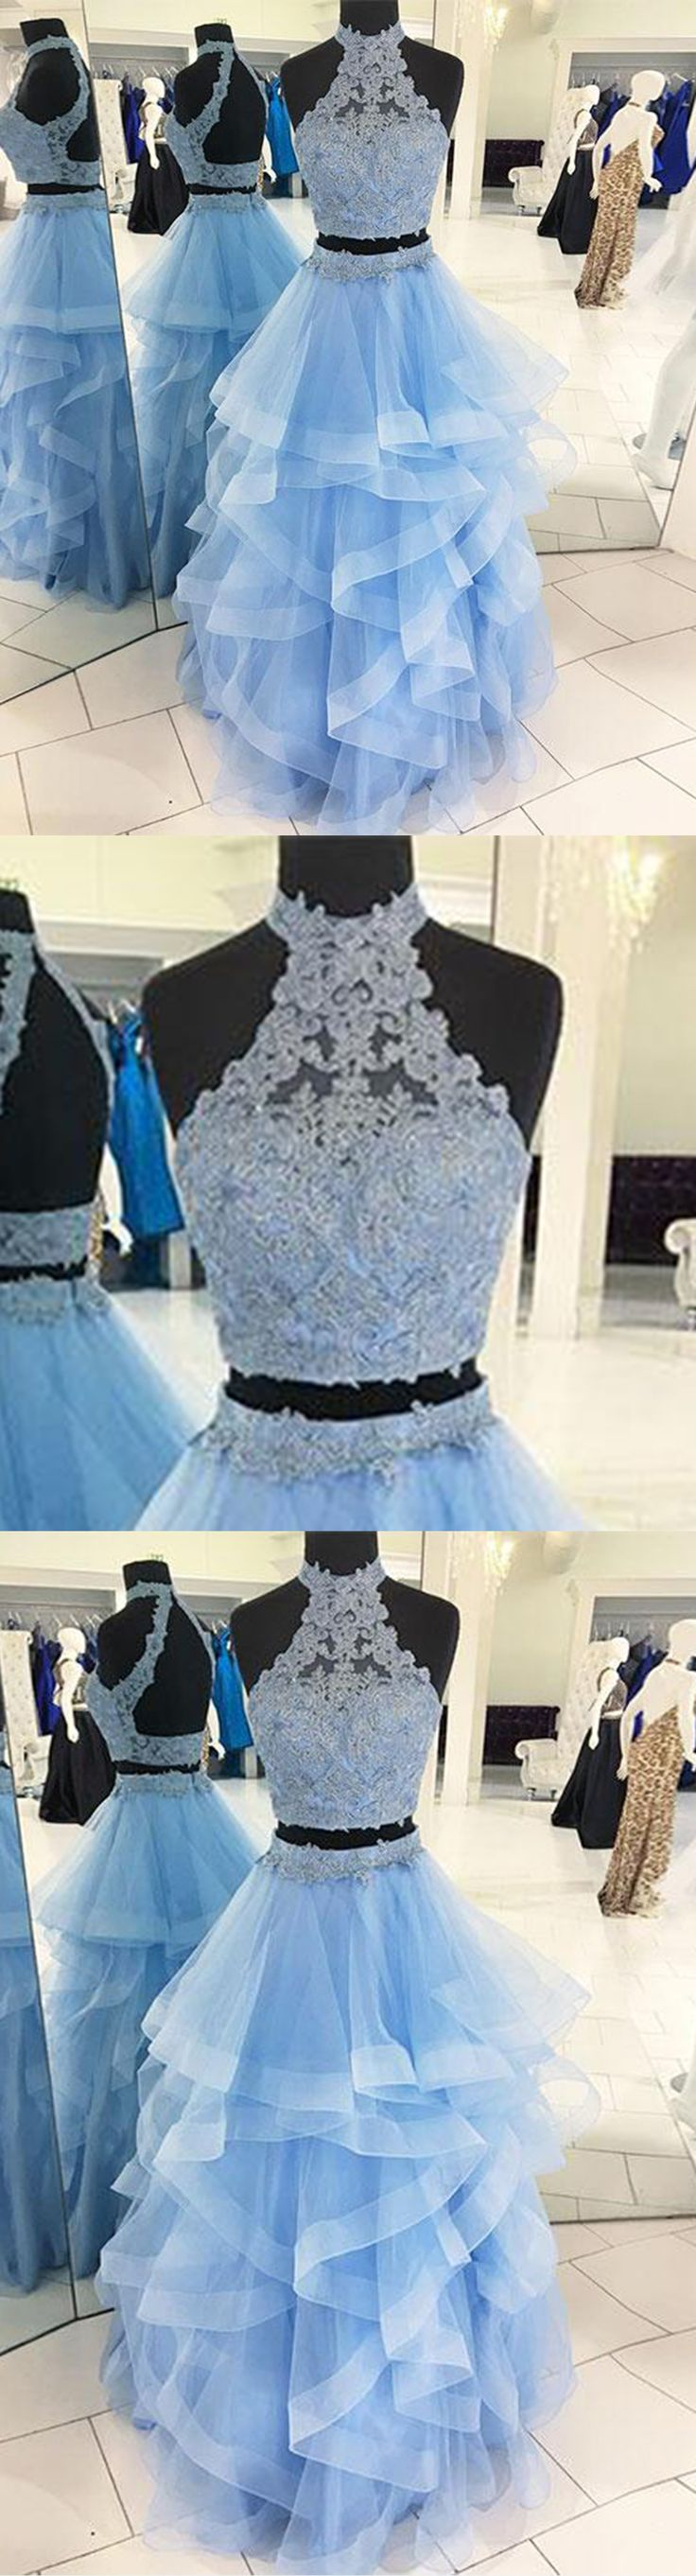 Two Pieces Prom Dresses | It's ice blue, high neck and made of lace and tulle #prom #dress #promdress